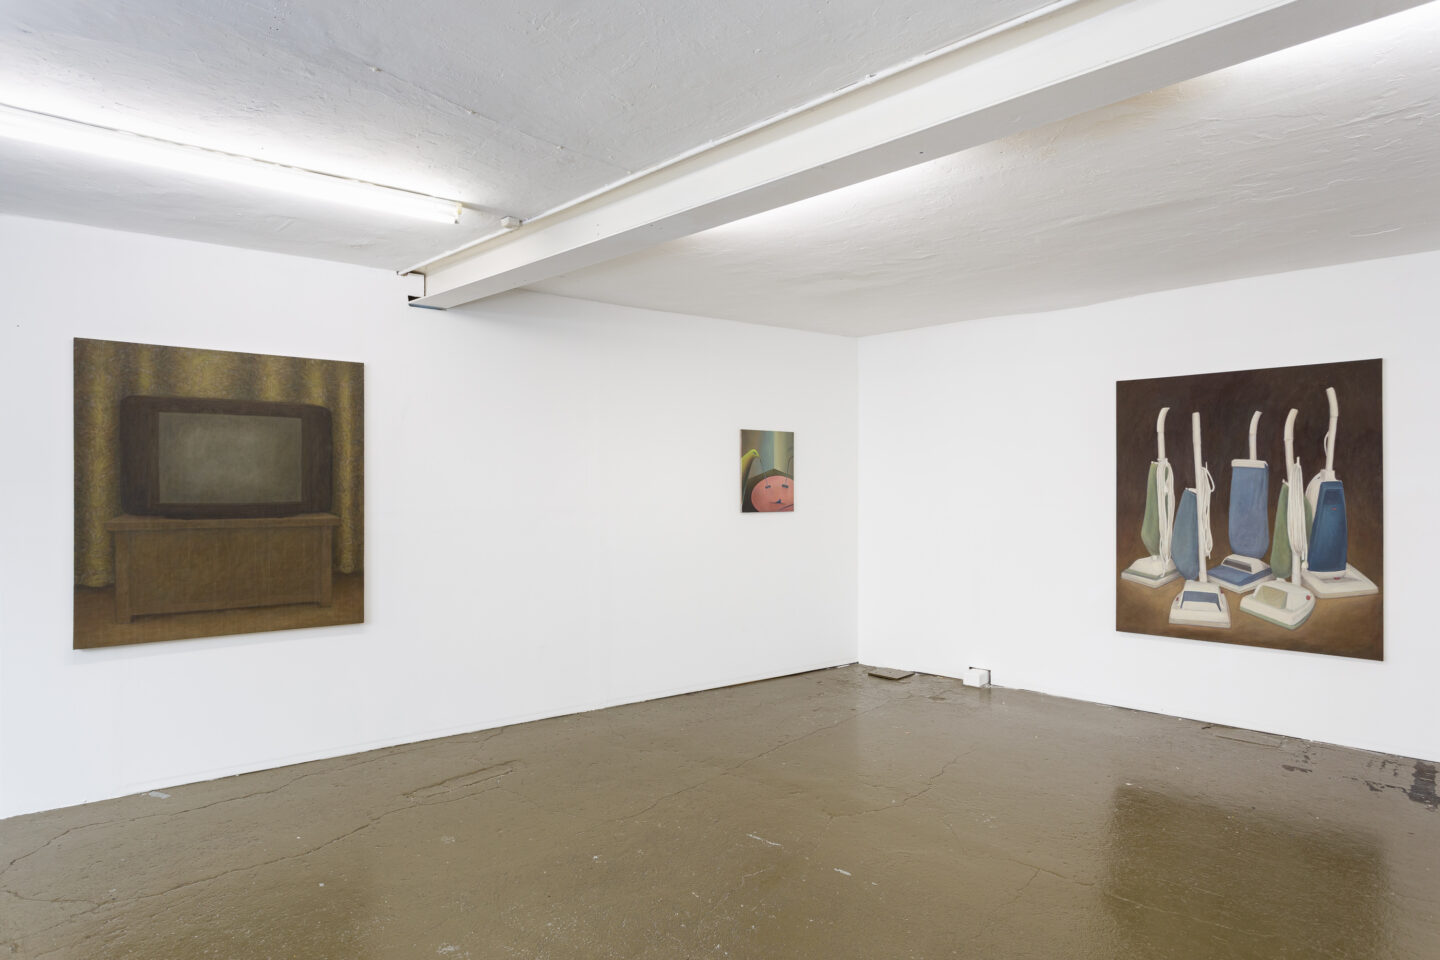 Exhibition View Groupshow «New (Object) Order» with Christoph Hänsli, Eduardo Rubén and Francisco Sierra at Last Tango, Zurich, 2019 / Photo: Kilian Bannwart / Courtesy: the artists and Last Tango